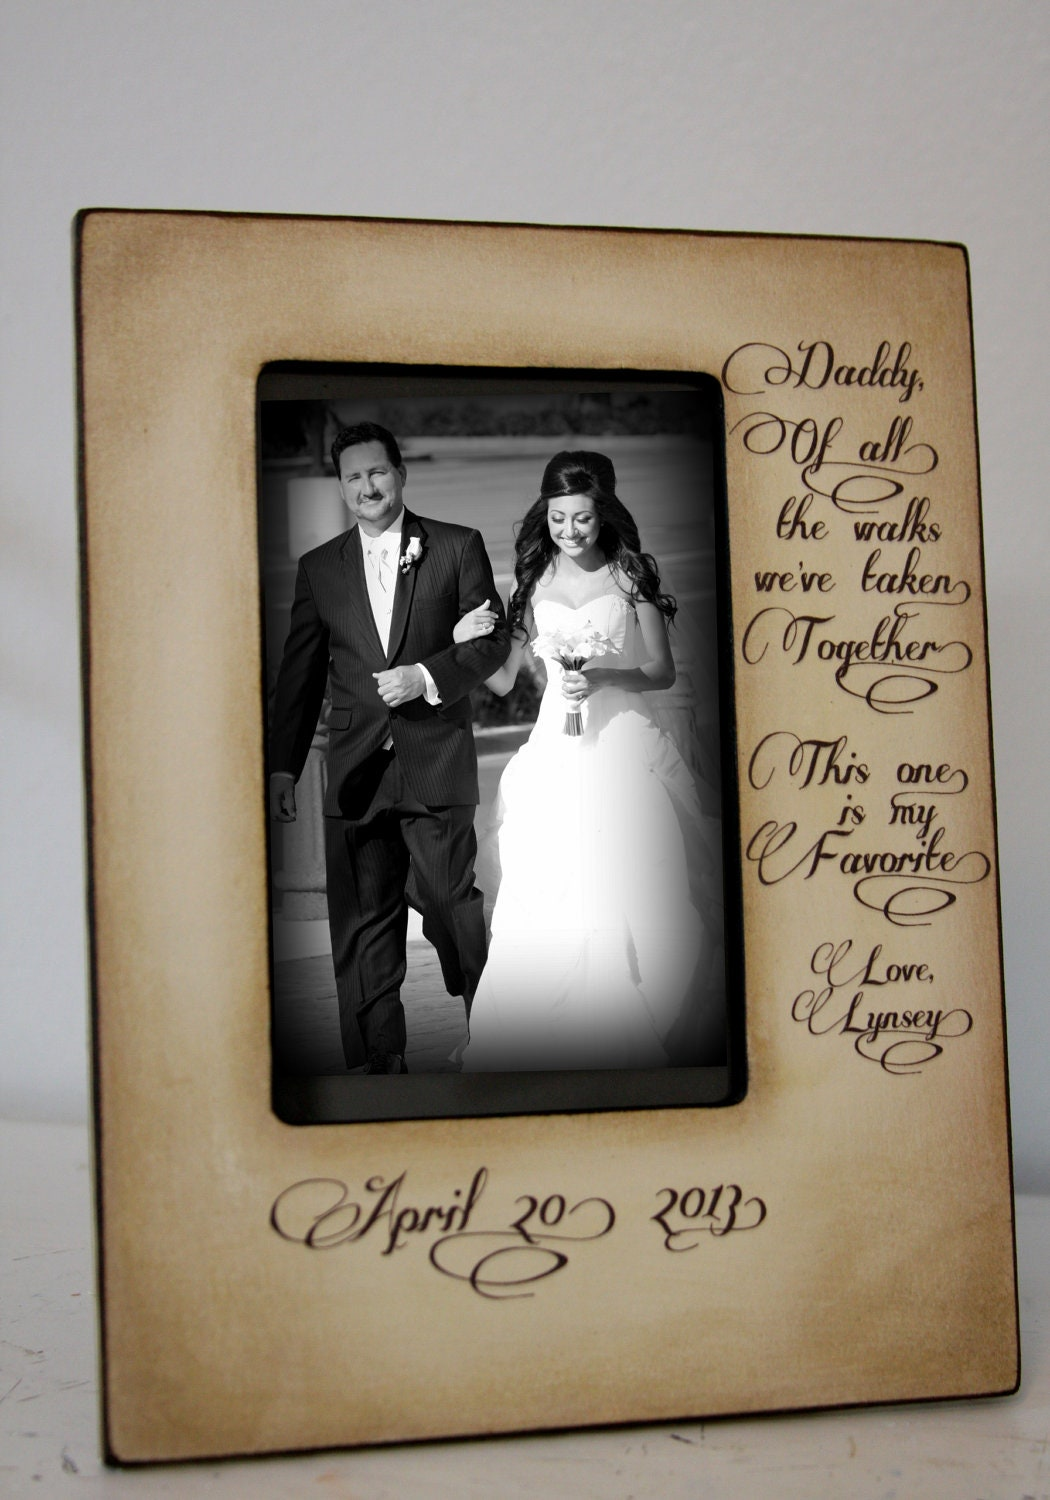 Wedding Gifts For Dad From Bride : FAV/DAD: 8x10 Holds 4x6 Photo Father of the Bride Gift Bridal